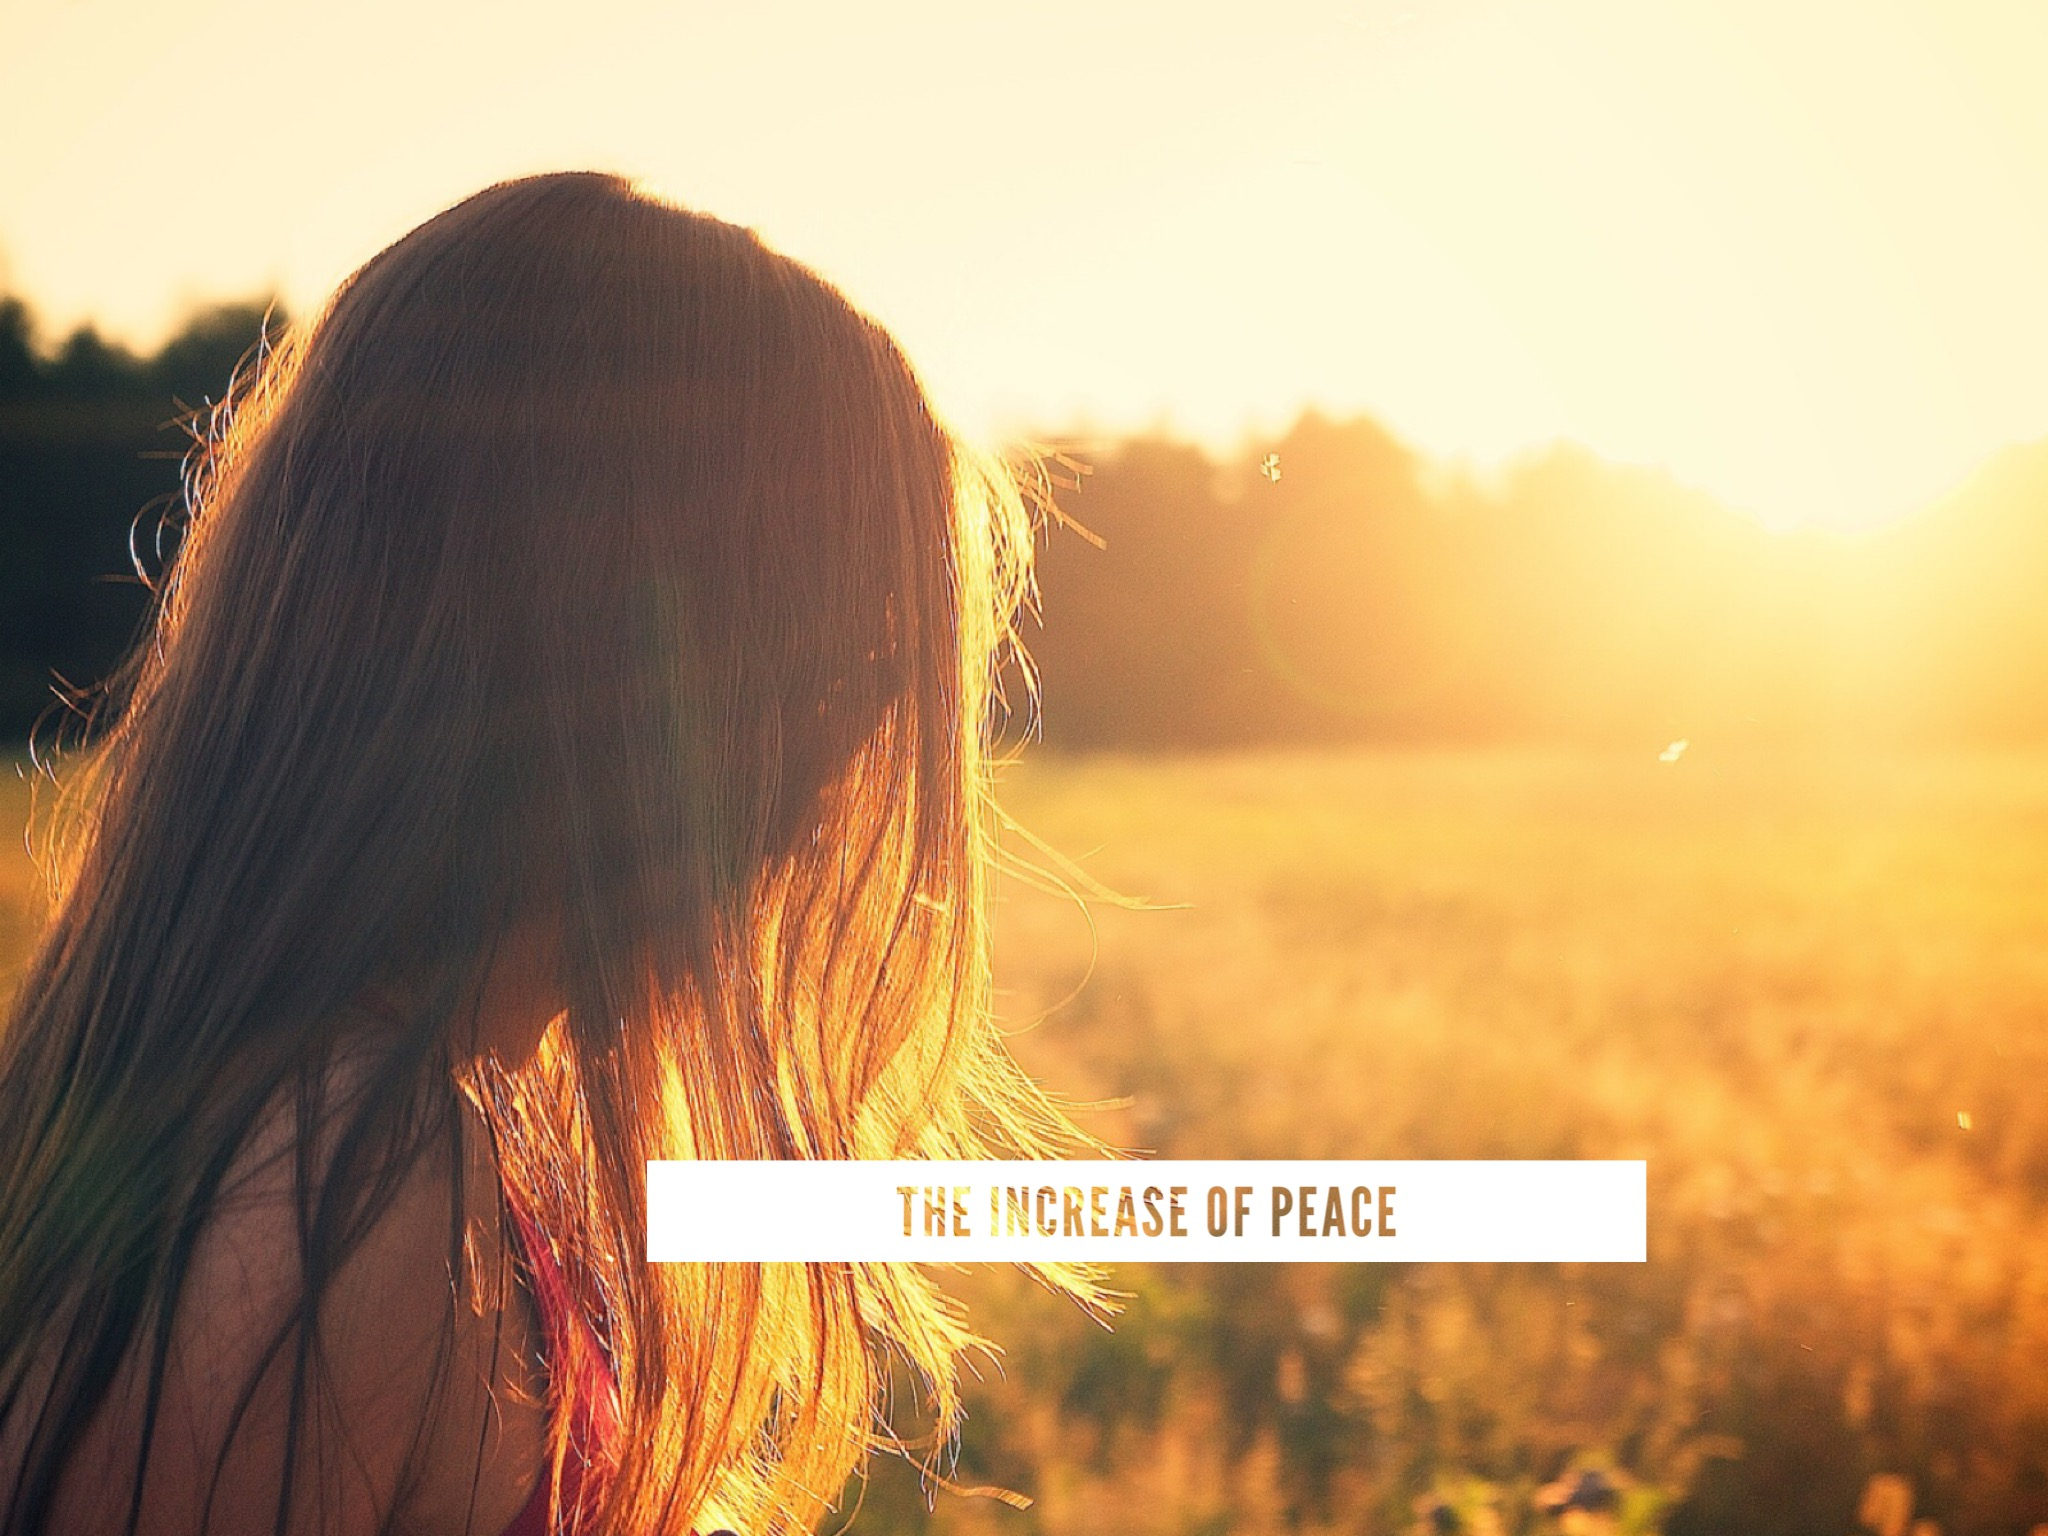 The Increase of Peace